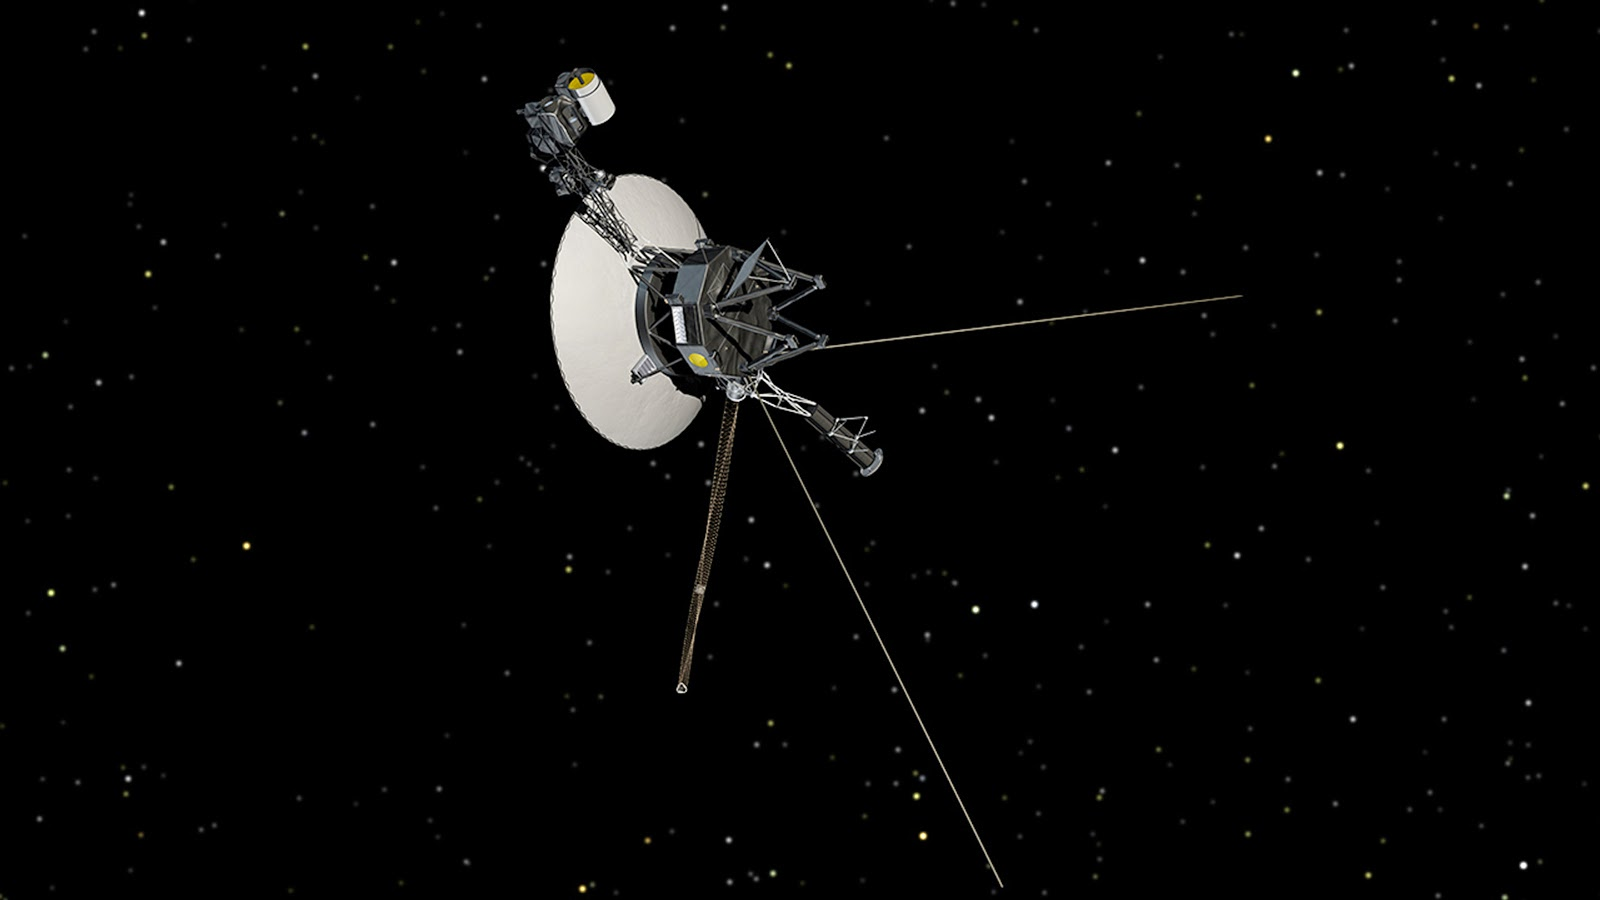 space probe voyager - HD 1820×1024